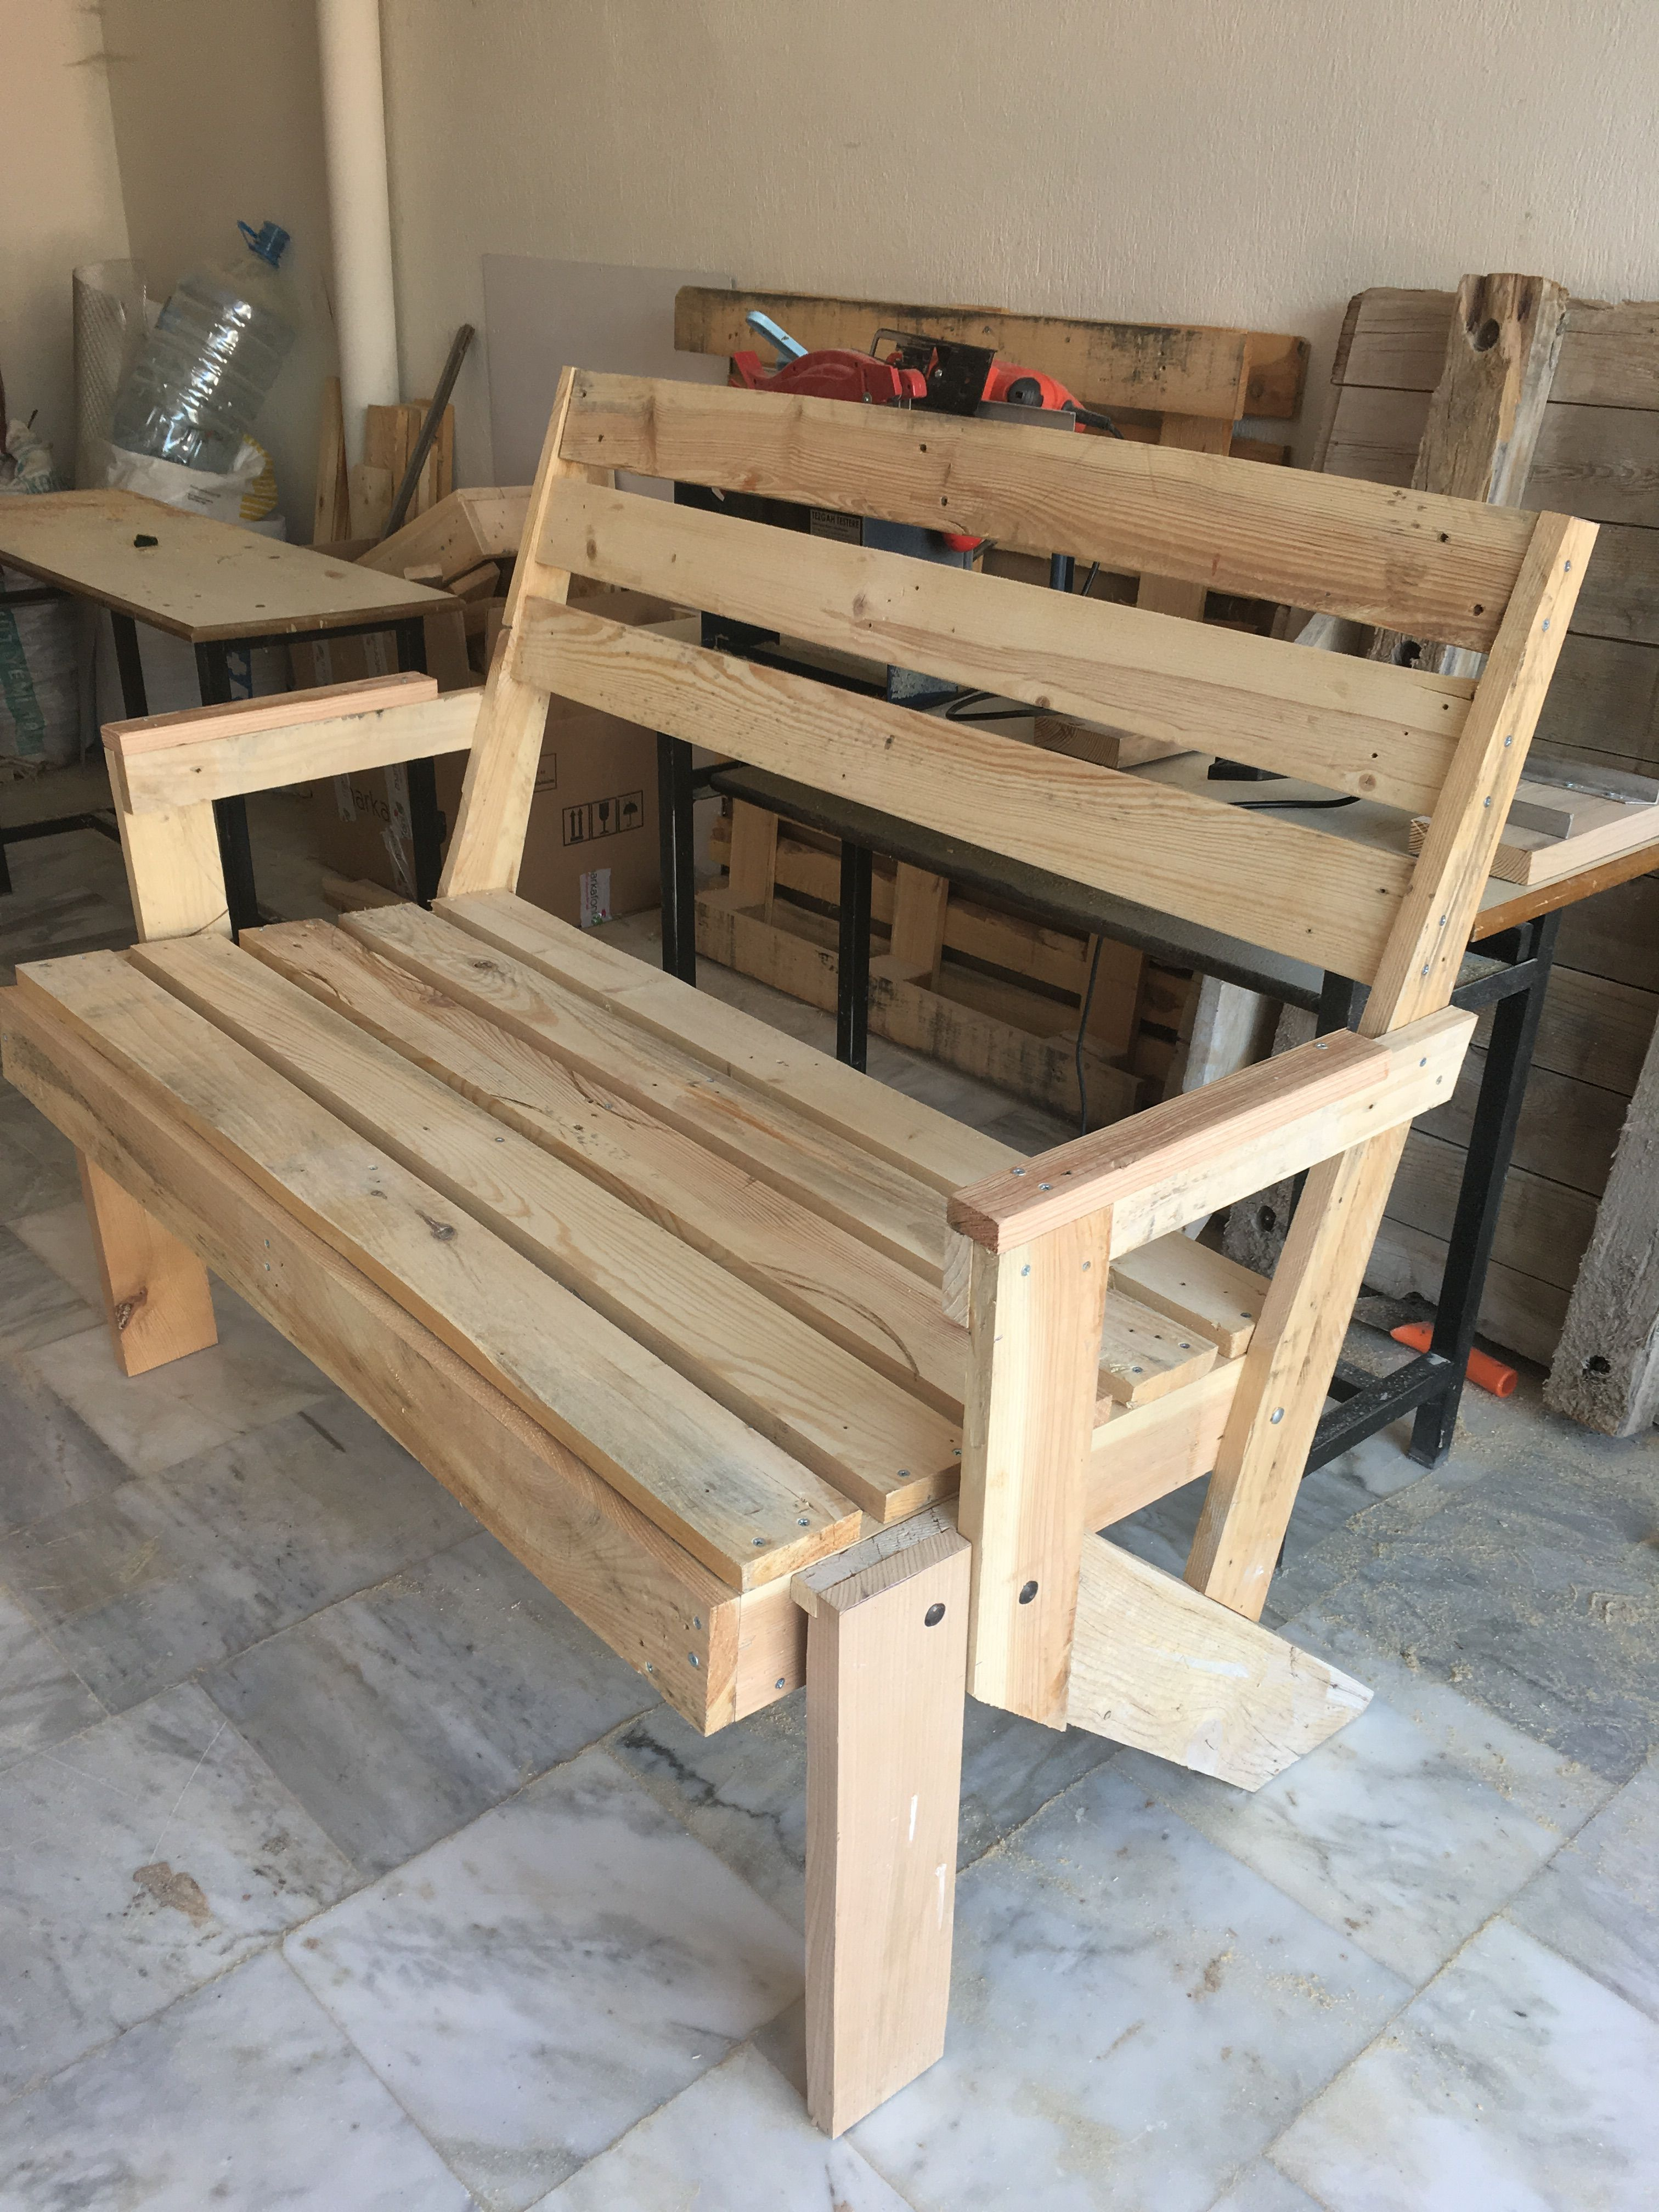 Pin by TC Bostn on Palet | Pinterest | Pallets, Picnic table bench ...